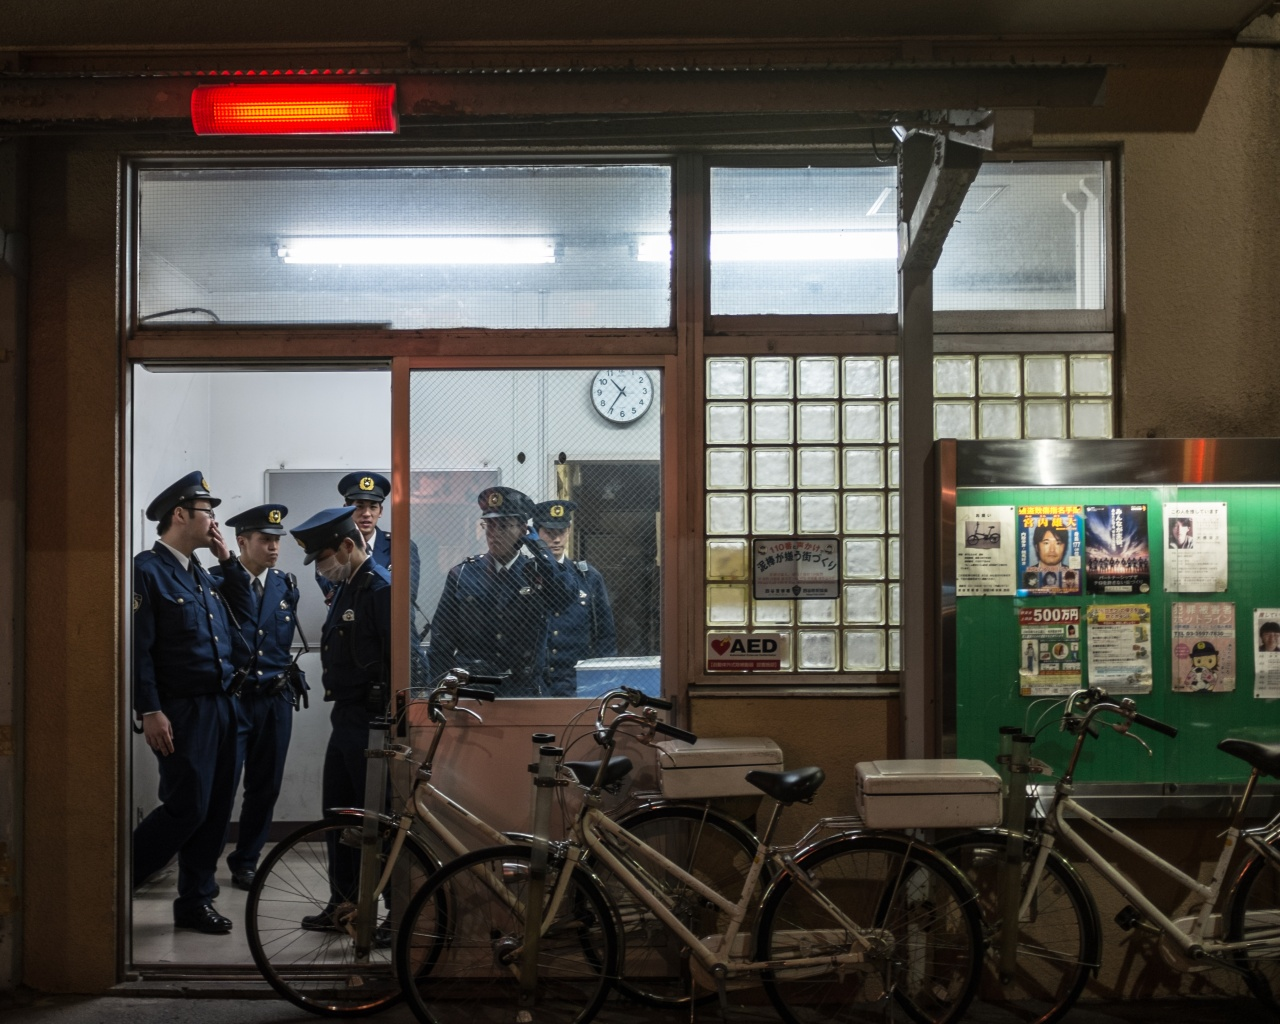 Japanese police officers mill about late night.